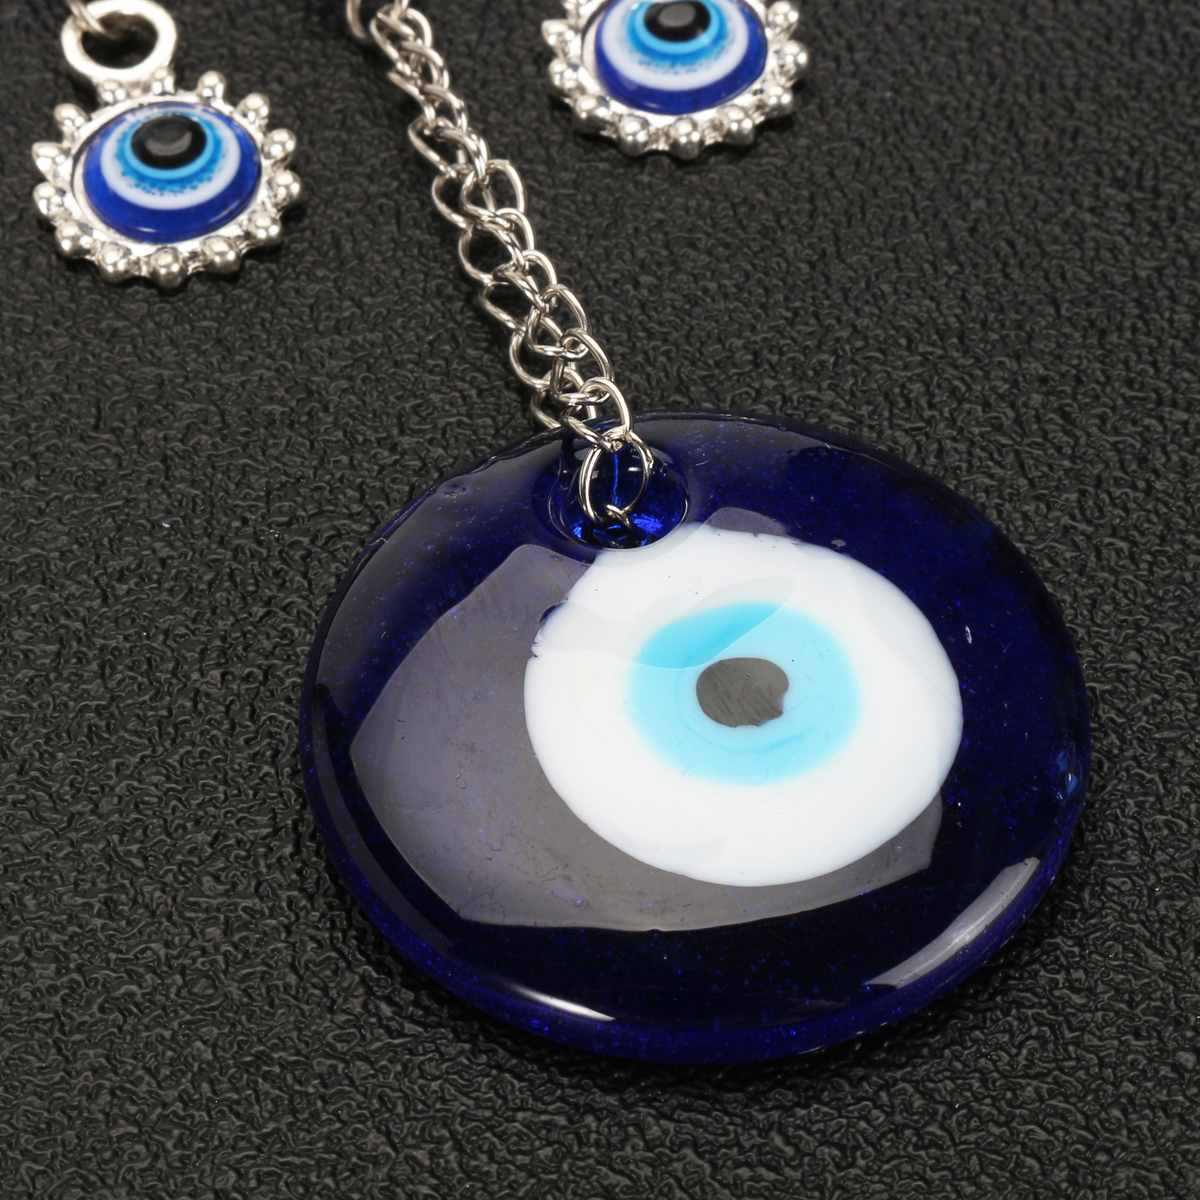 20*8cm Turkish Blue Glass Evil Eyes Wall Hanging Pendant Butterfly Lucky Protection Hamsa Hand Amulet Home Car Office Decoration